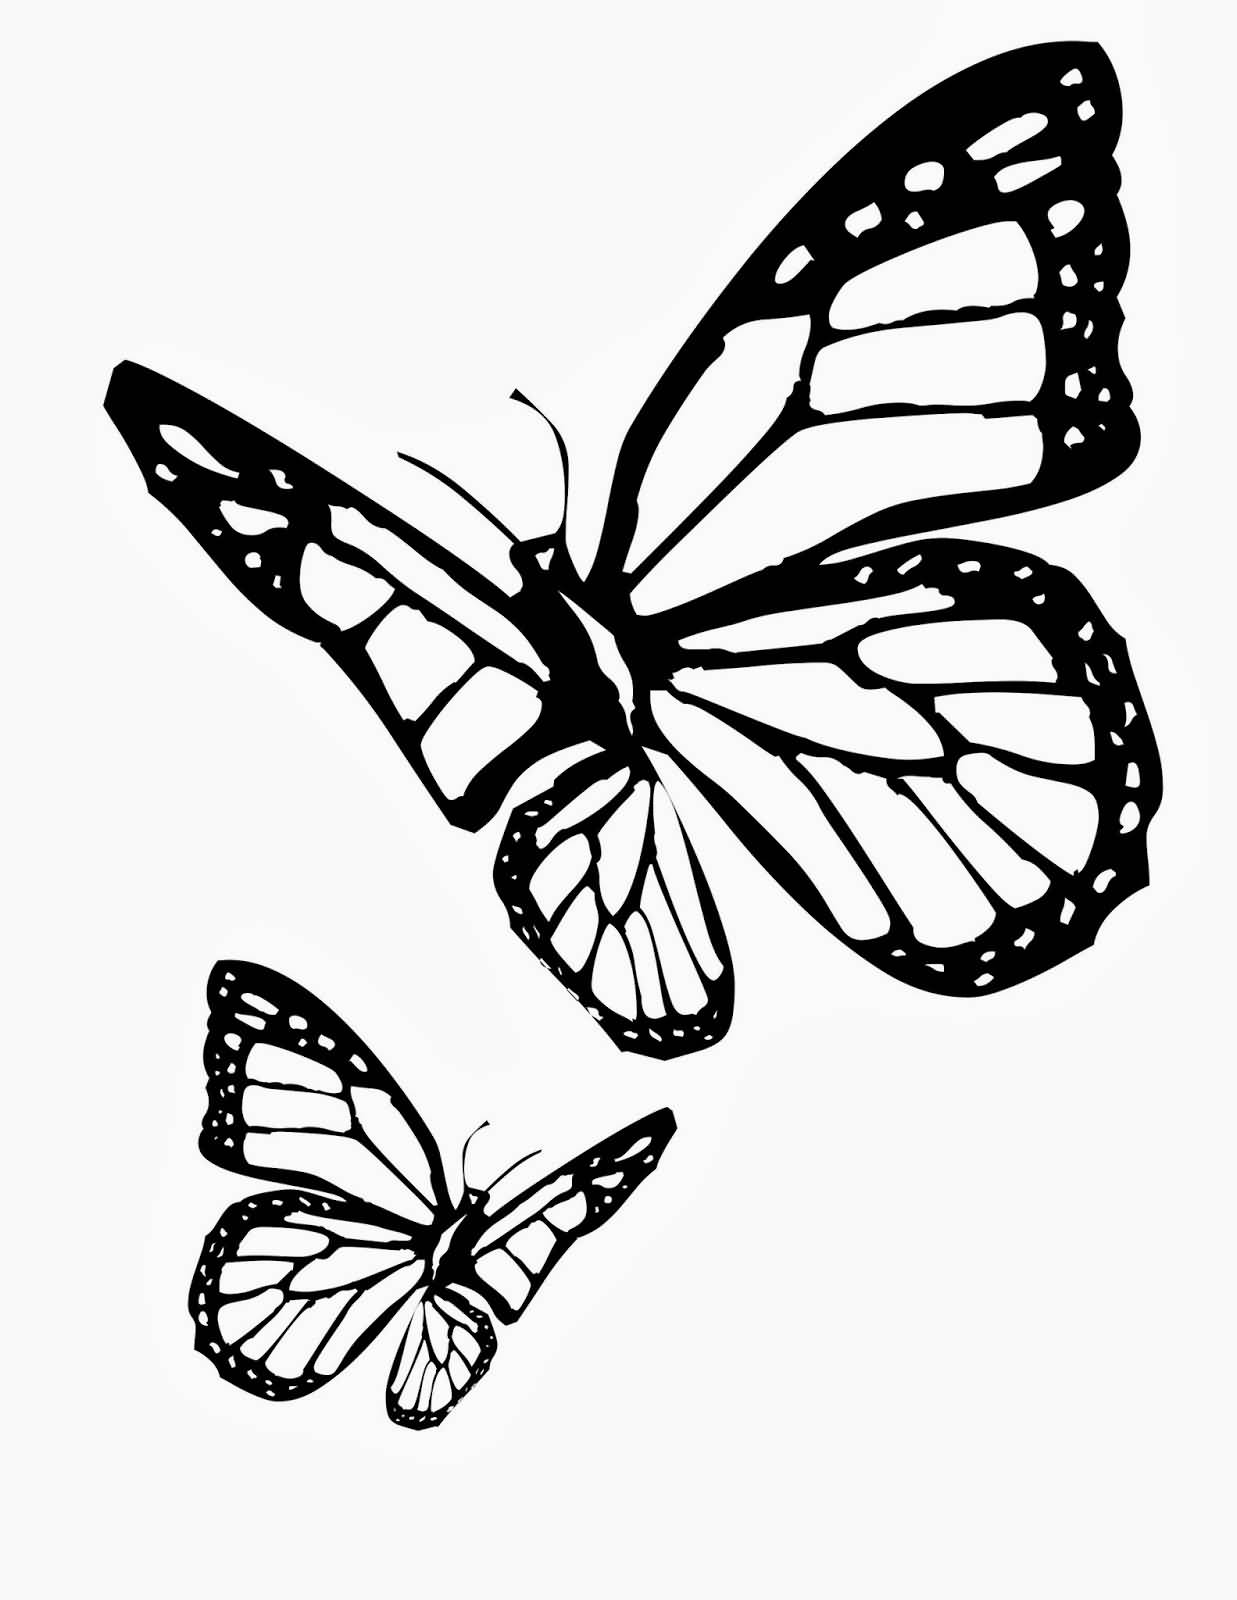 Flying Monarch Butterflies Stencil Tattoo Design